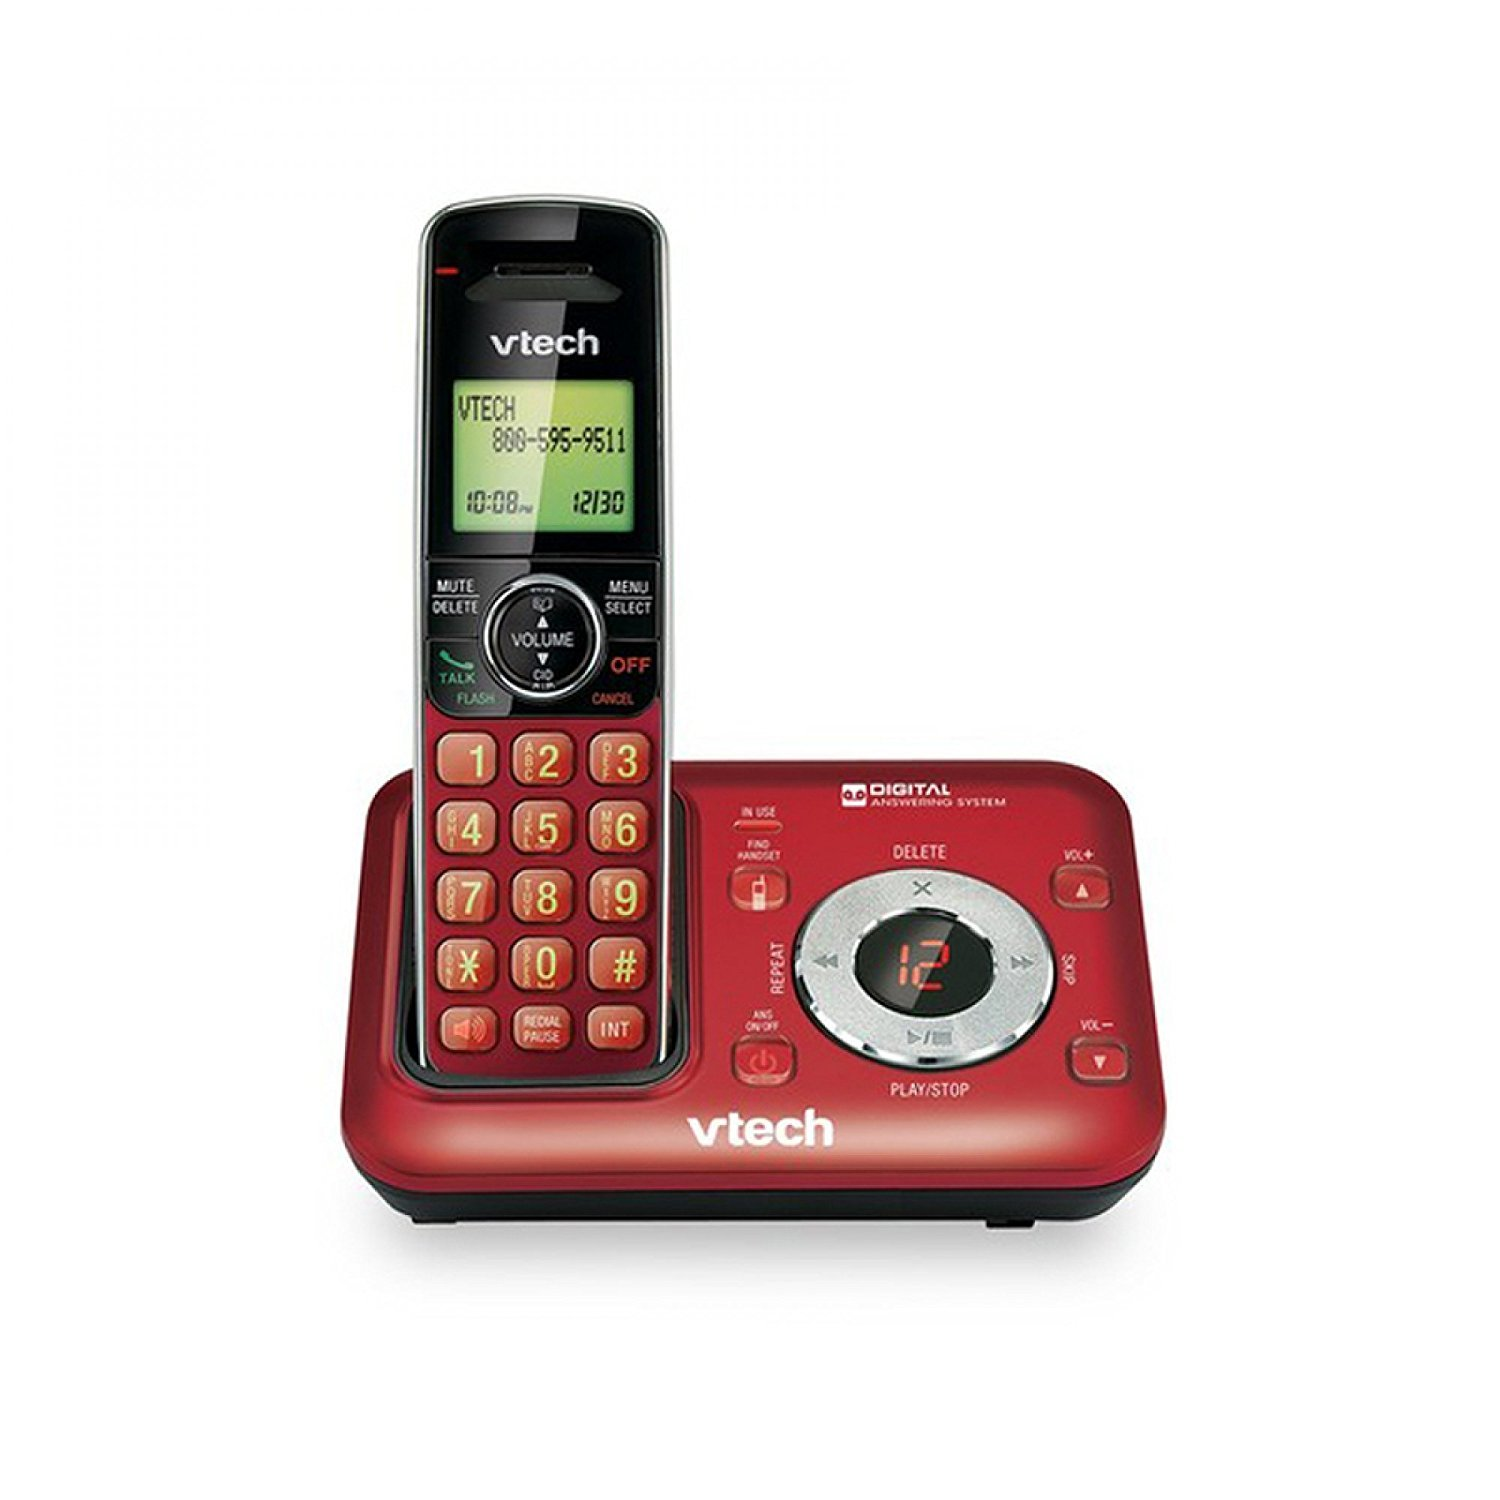 VTech CS6429-16 DECT 6.0 Cordless Phone with Digital Answering System and Caller ID, Expandable up to 5 Handsets, Wall Mountable, Red